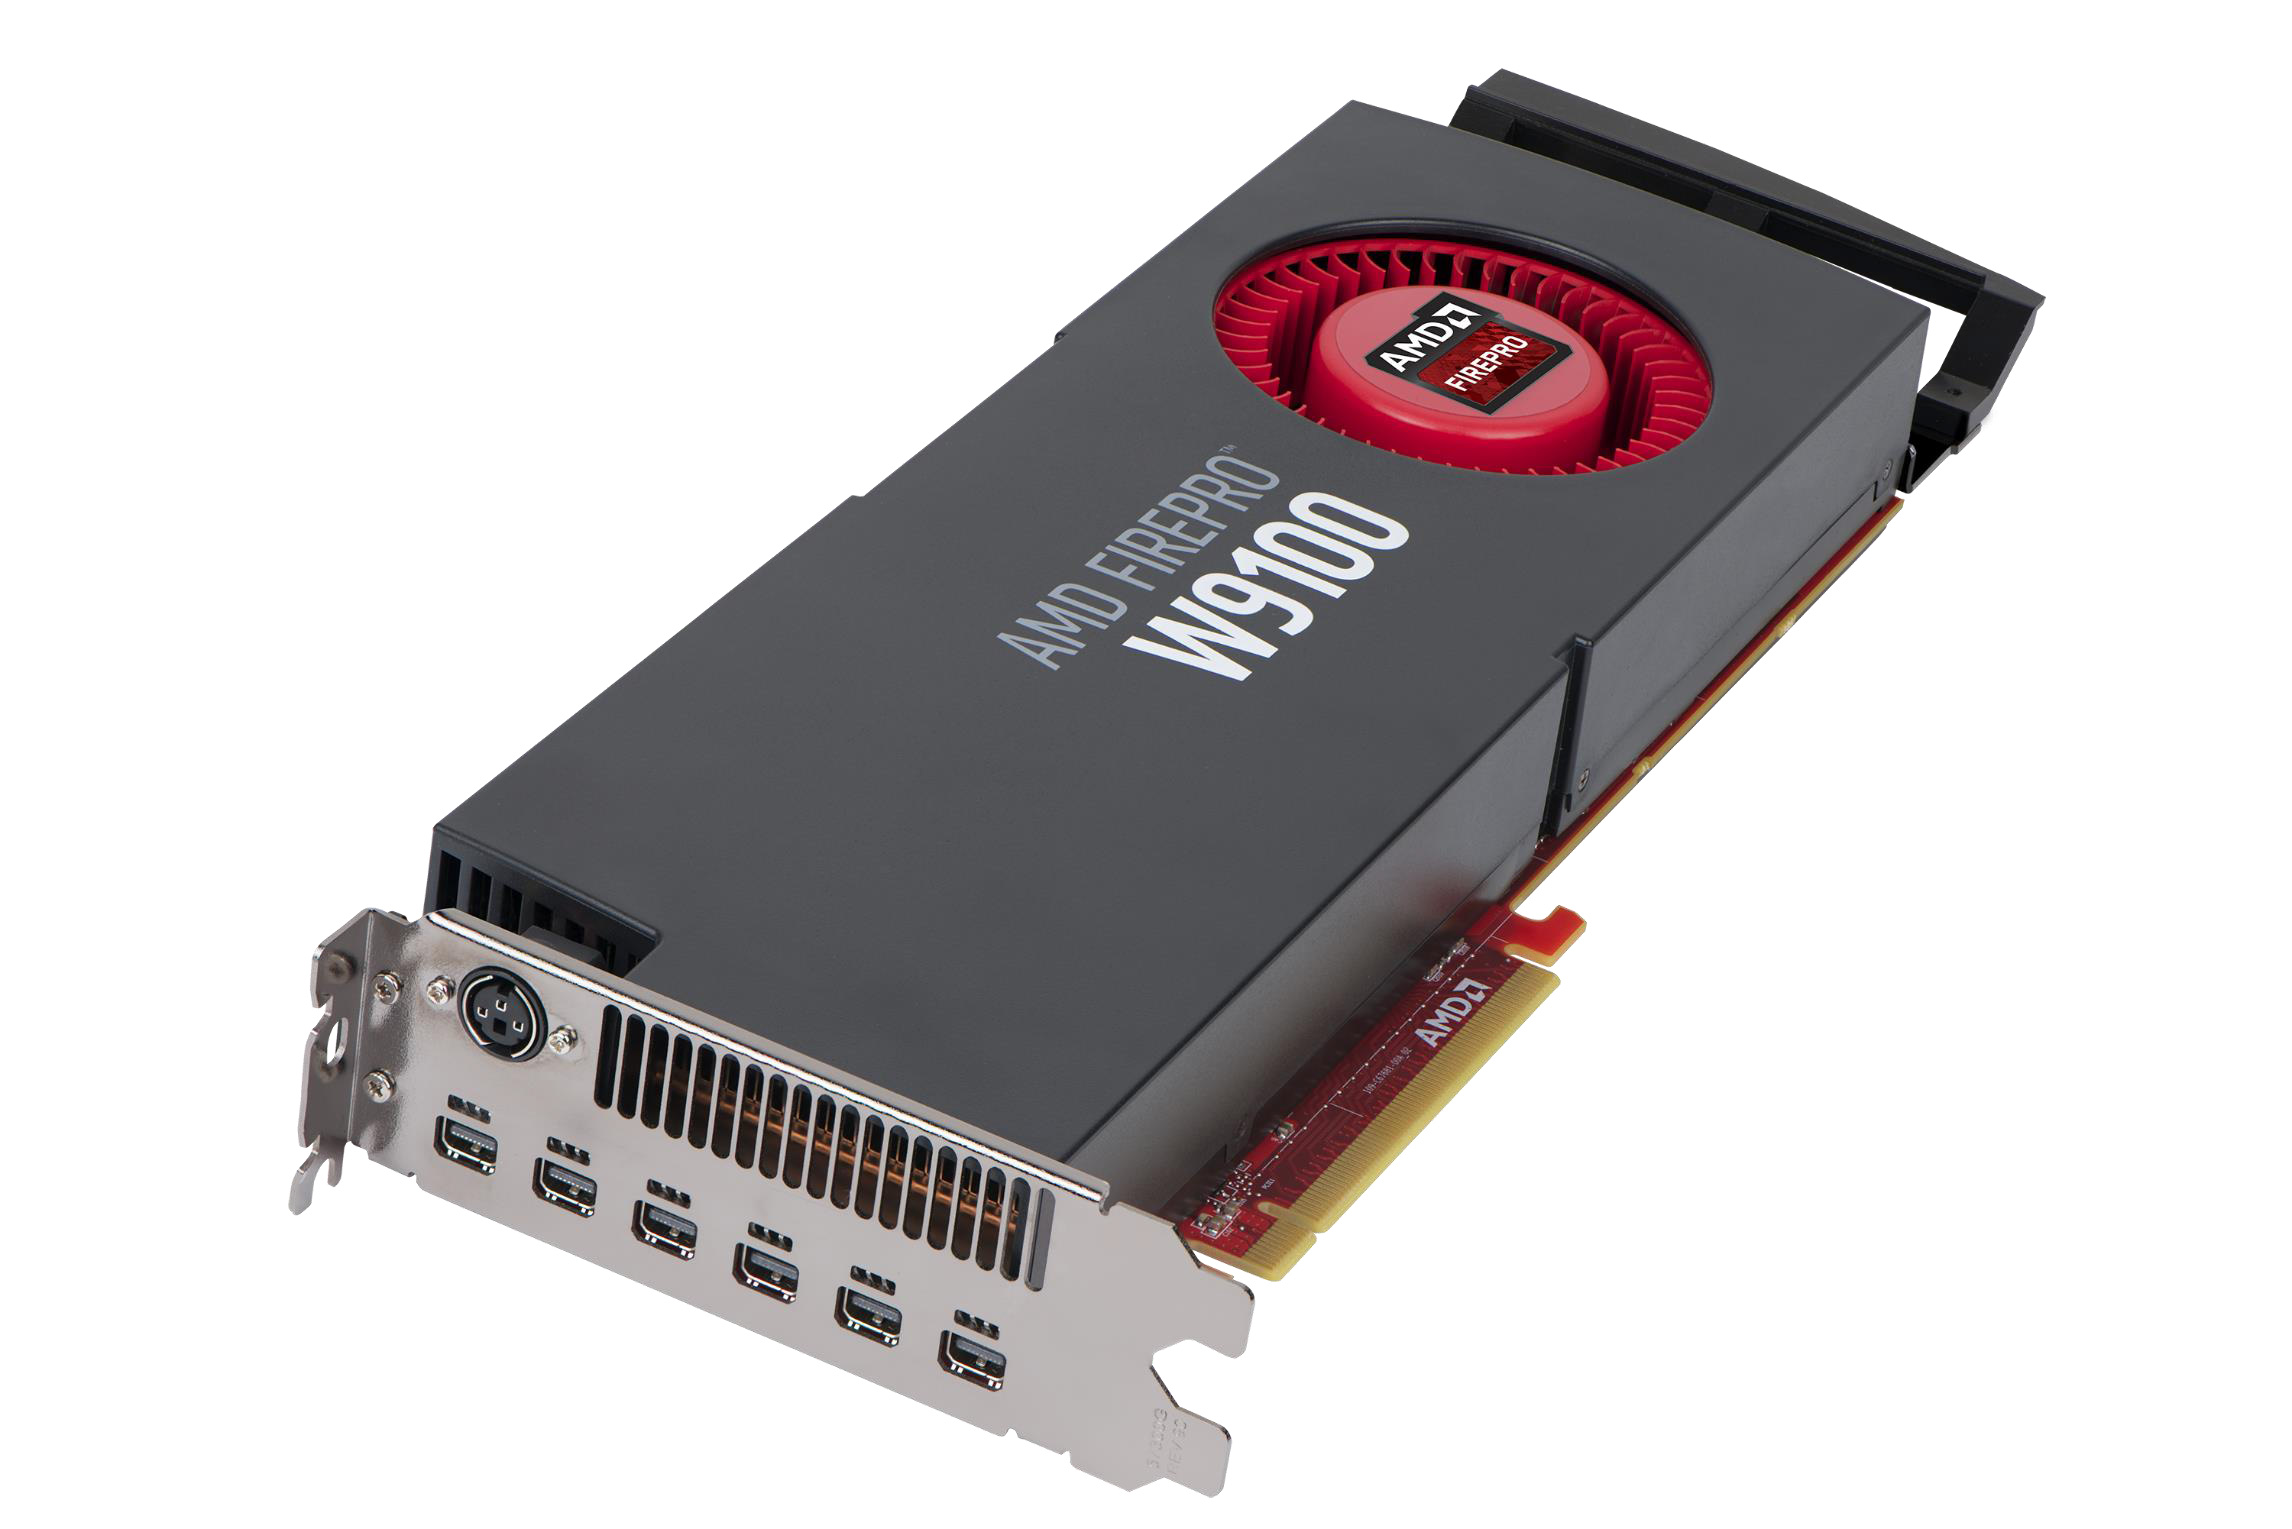 Chief Architect Software Amd Upgrades The Firepro W9100 Hawaii Xt Graphics Card